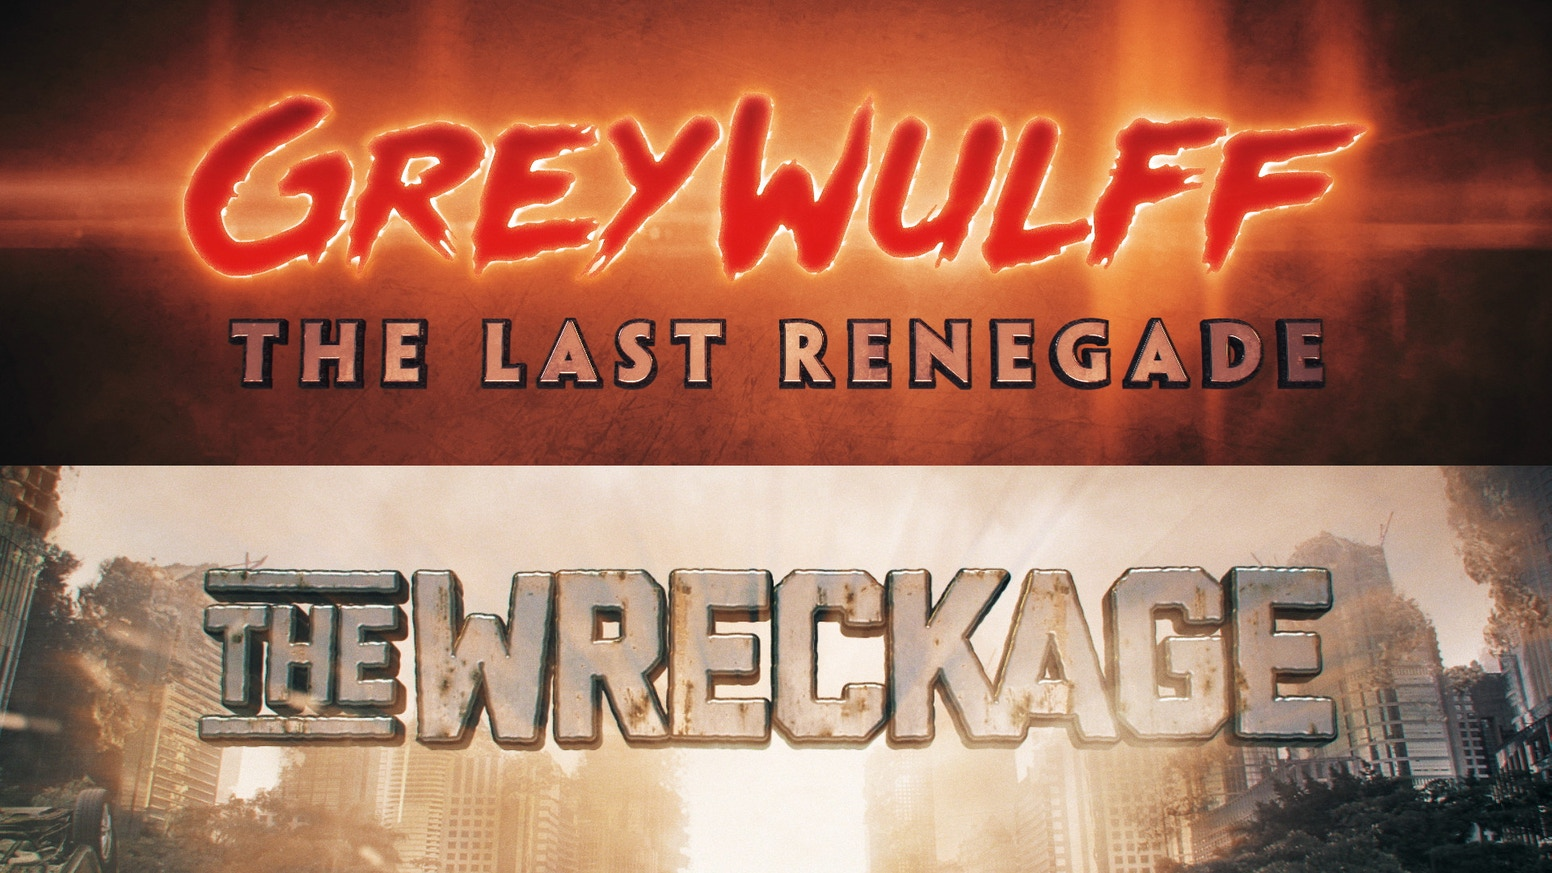 Greywulff/The Wreckage comic two pack are two completely original stories never before seen anywhere